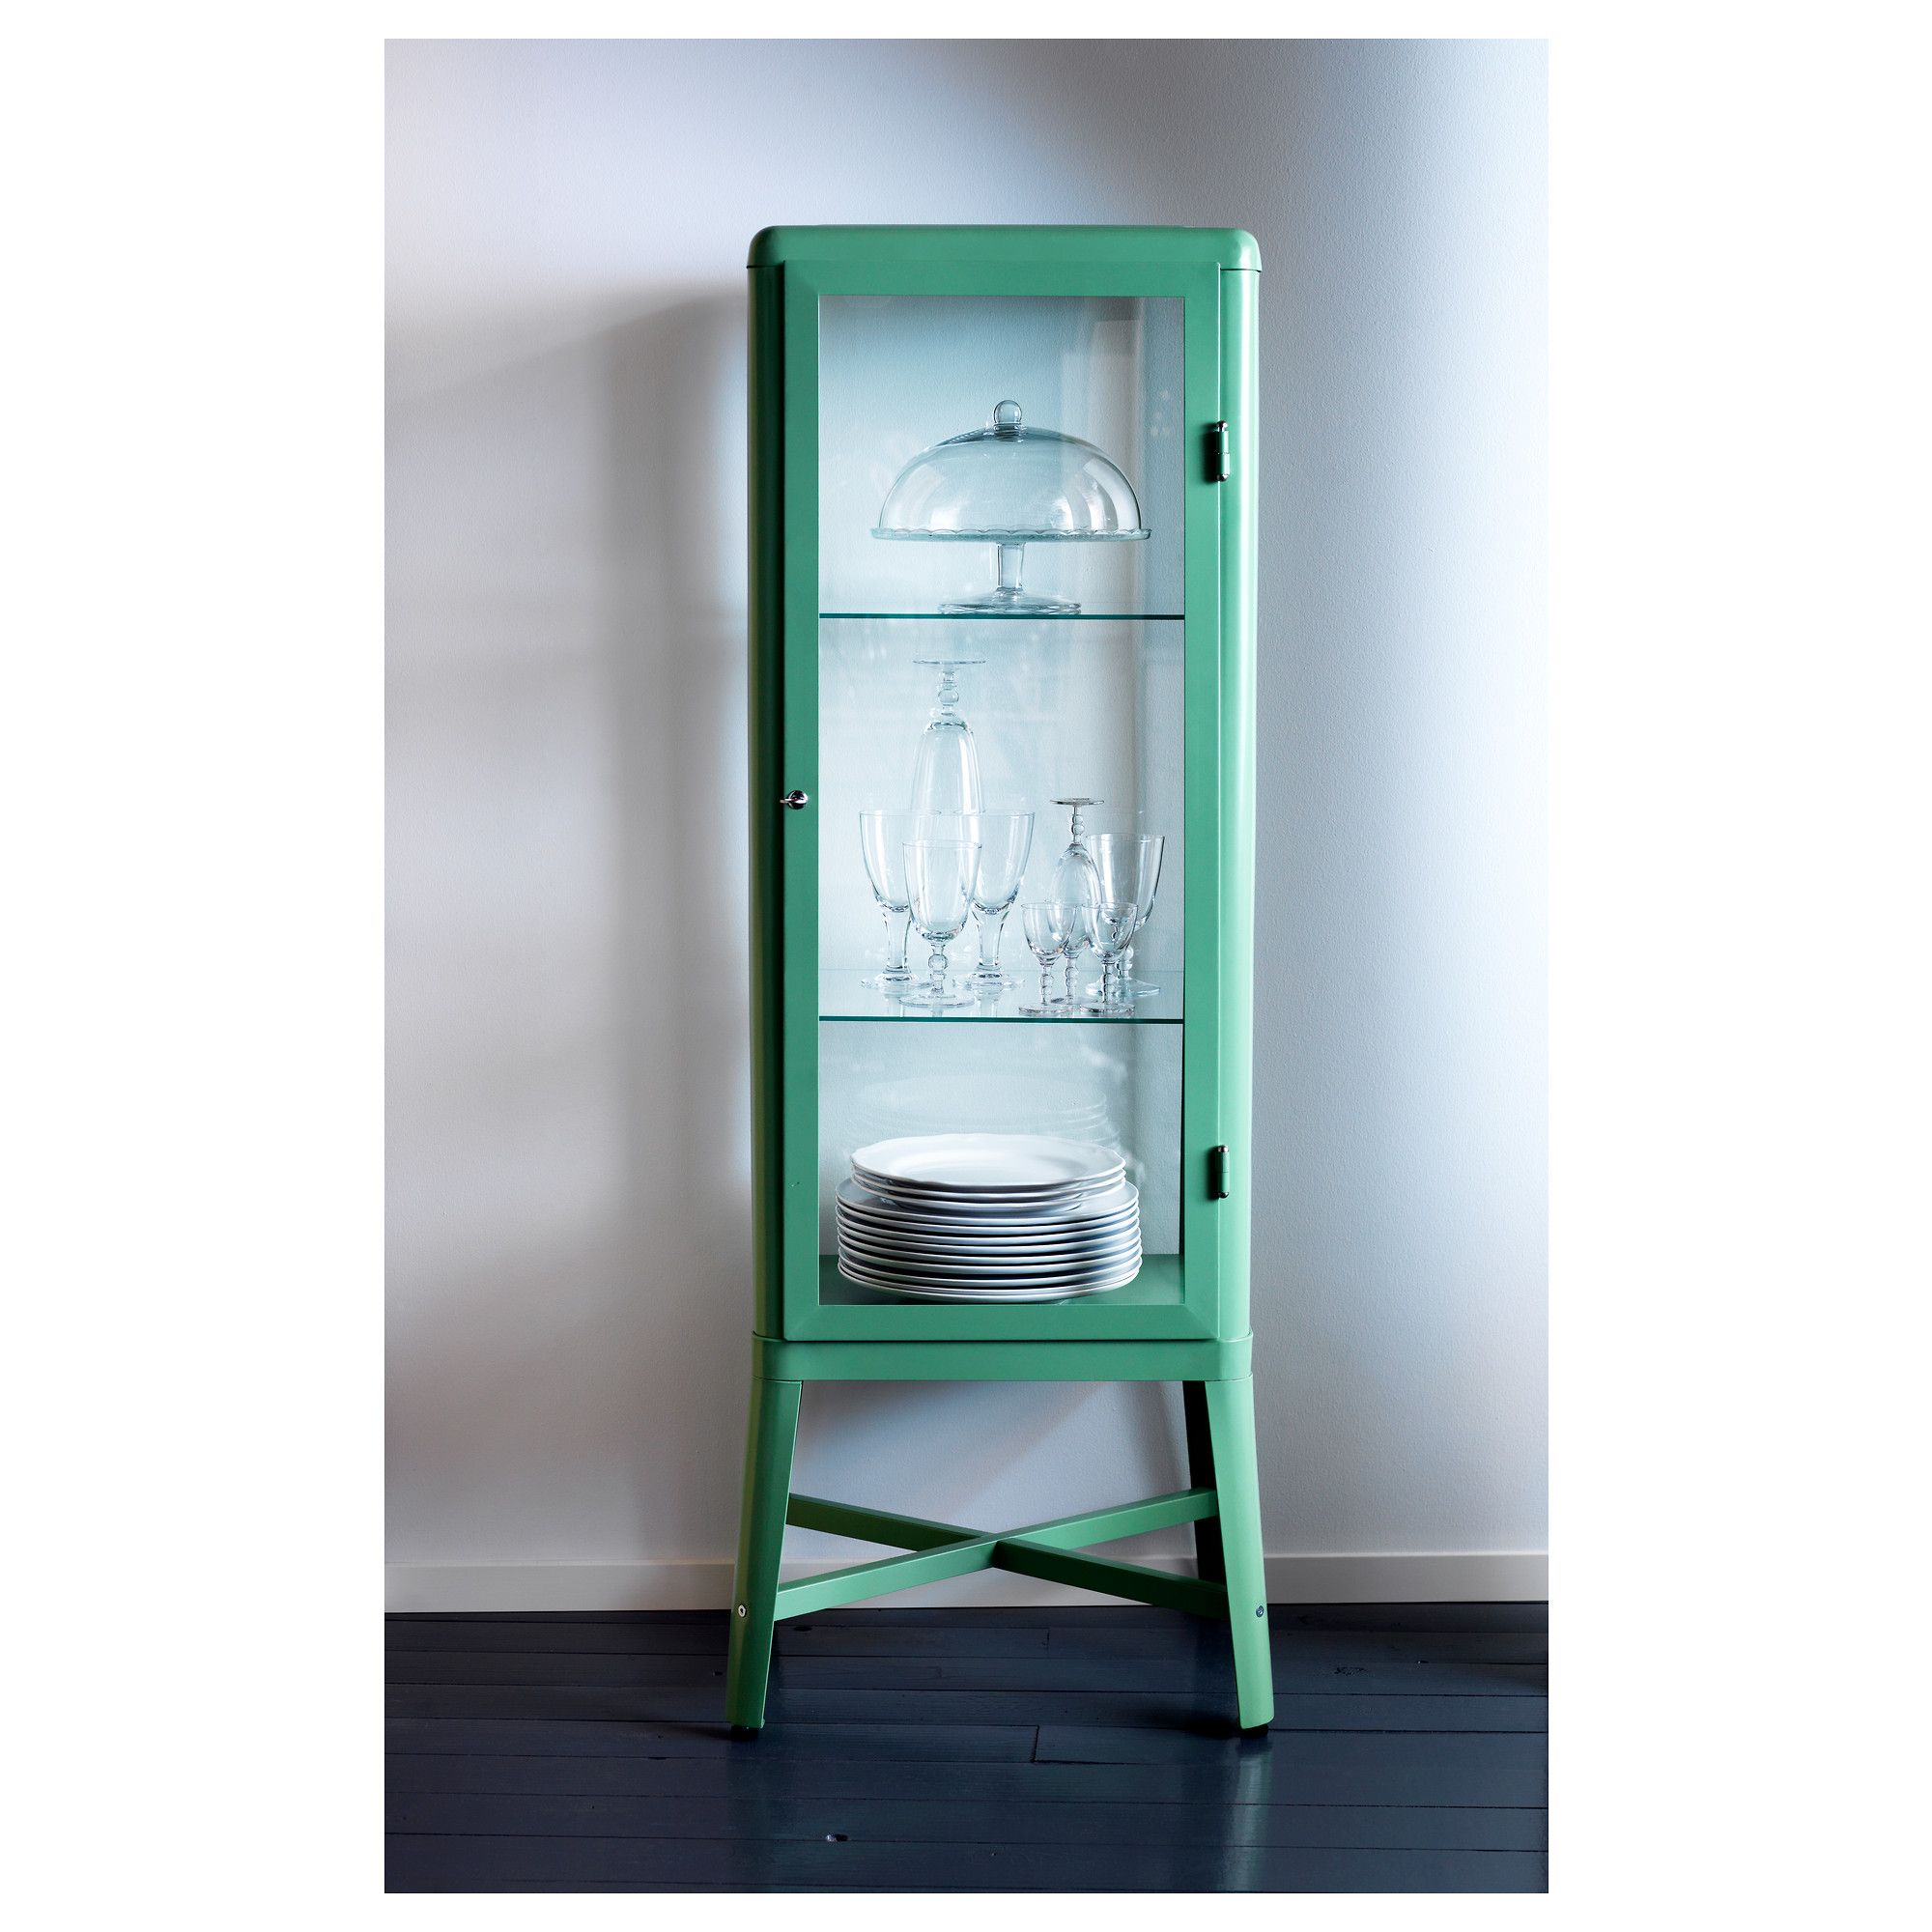 ikea cabinet lighting. FABRIKÖR Glass-door Cabinet - Light Green IKEA Perfect For A Bathroom Or Extra Kitchen Storage- Great Colors, Too! Ikea Lighting